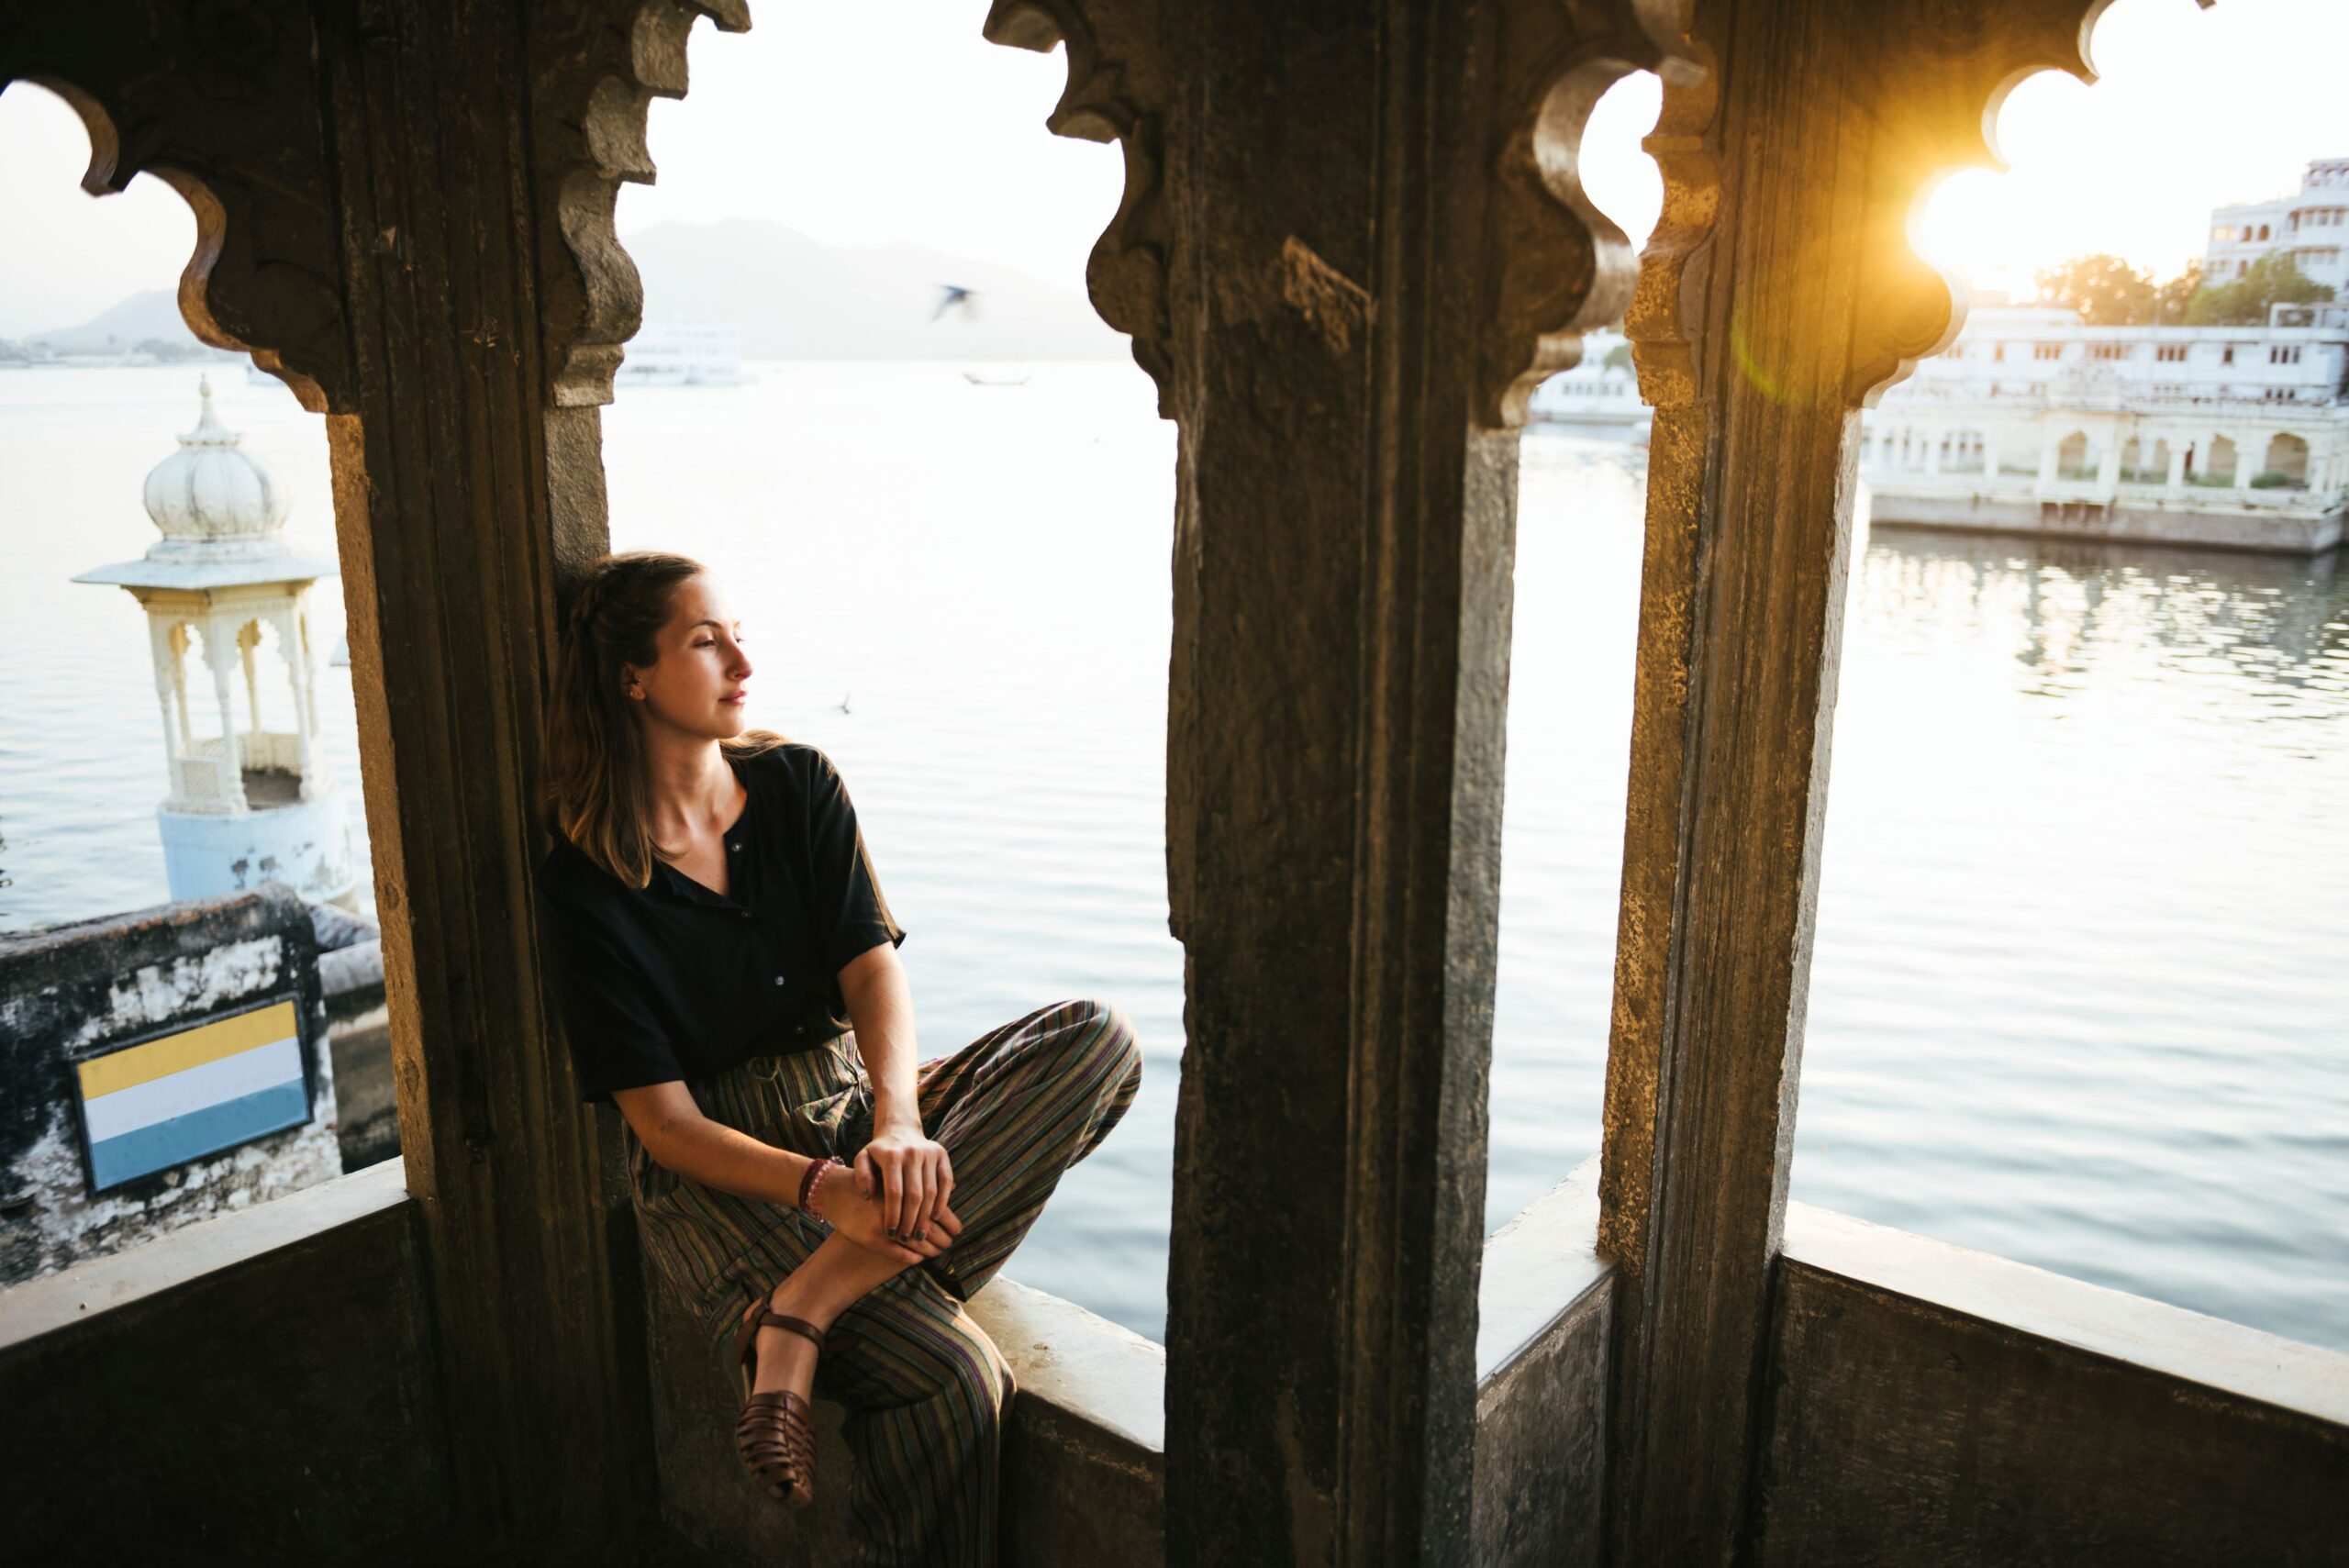 How to Deal With Loneliness While Living Abroad